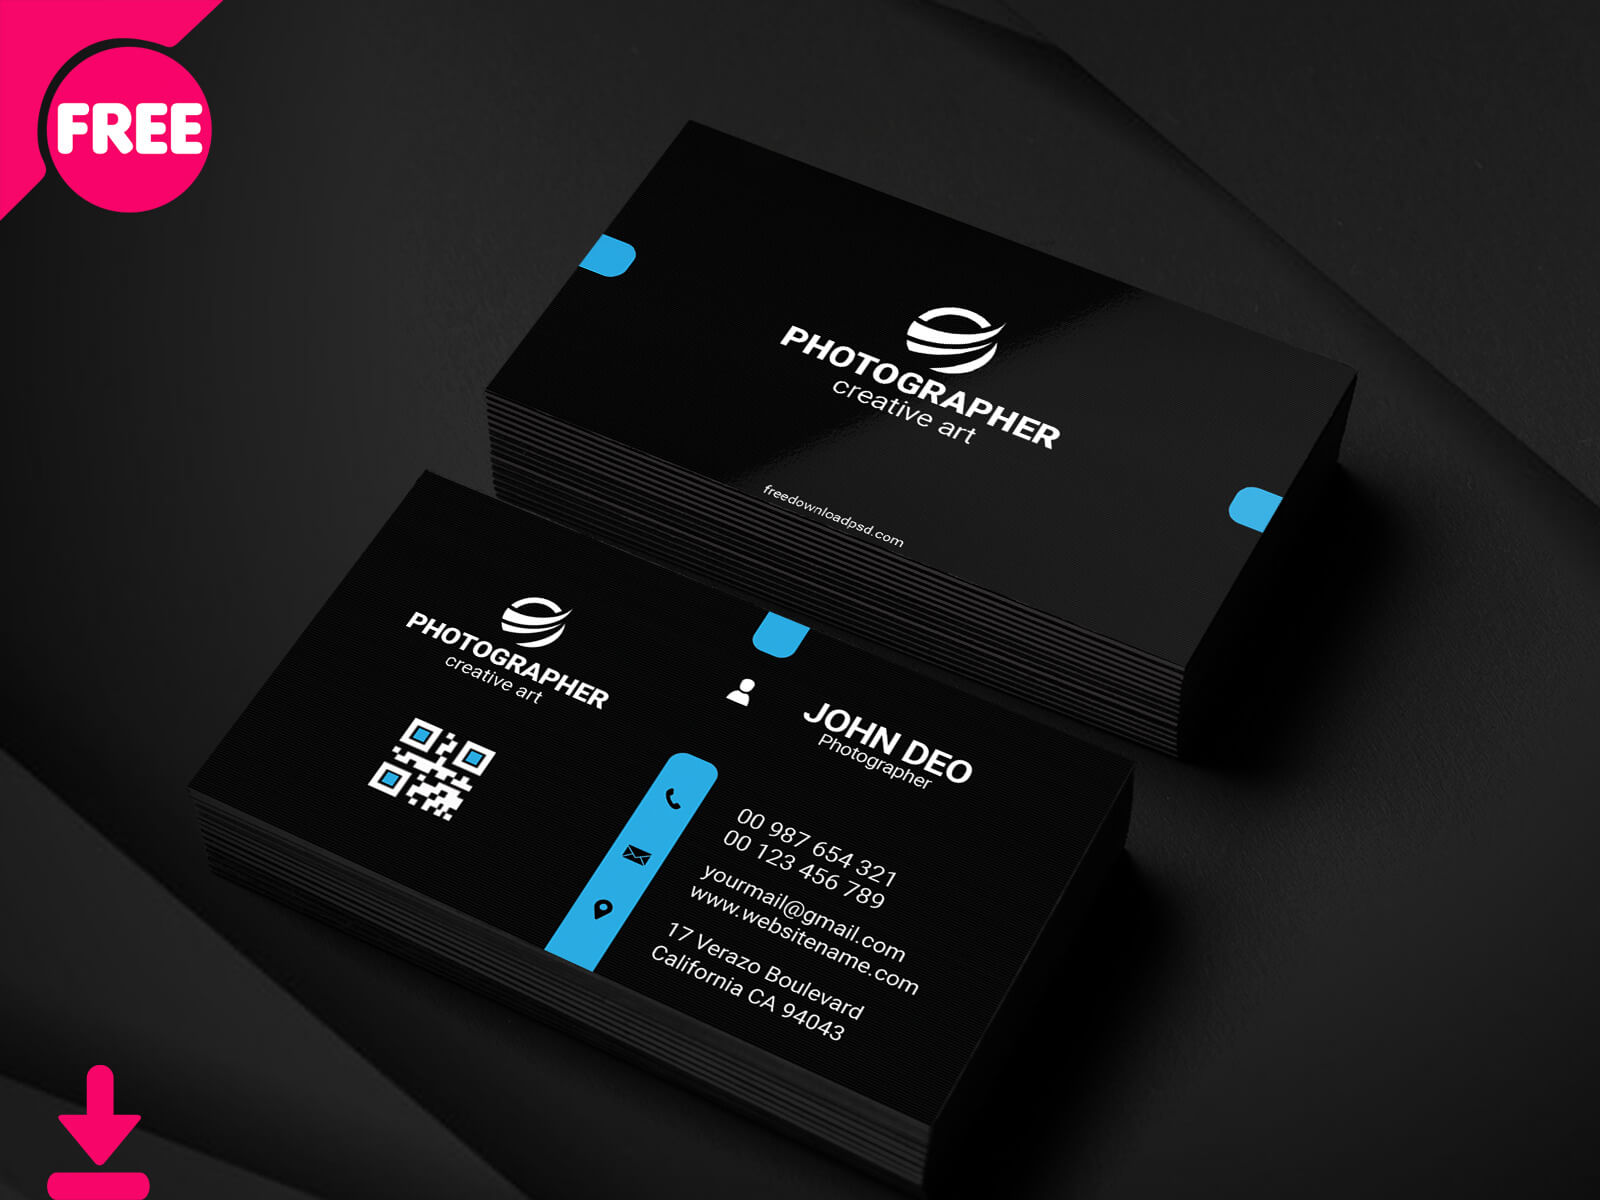 Free Personal Business Card Psd Template Cover | Searchmuzli In Free Personal Business Card Templates